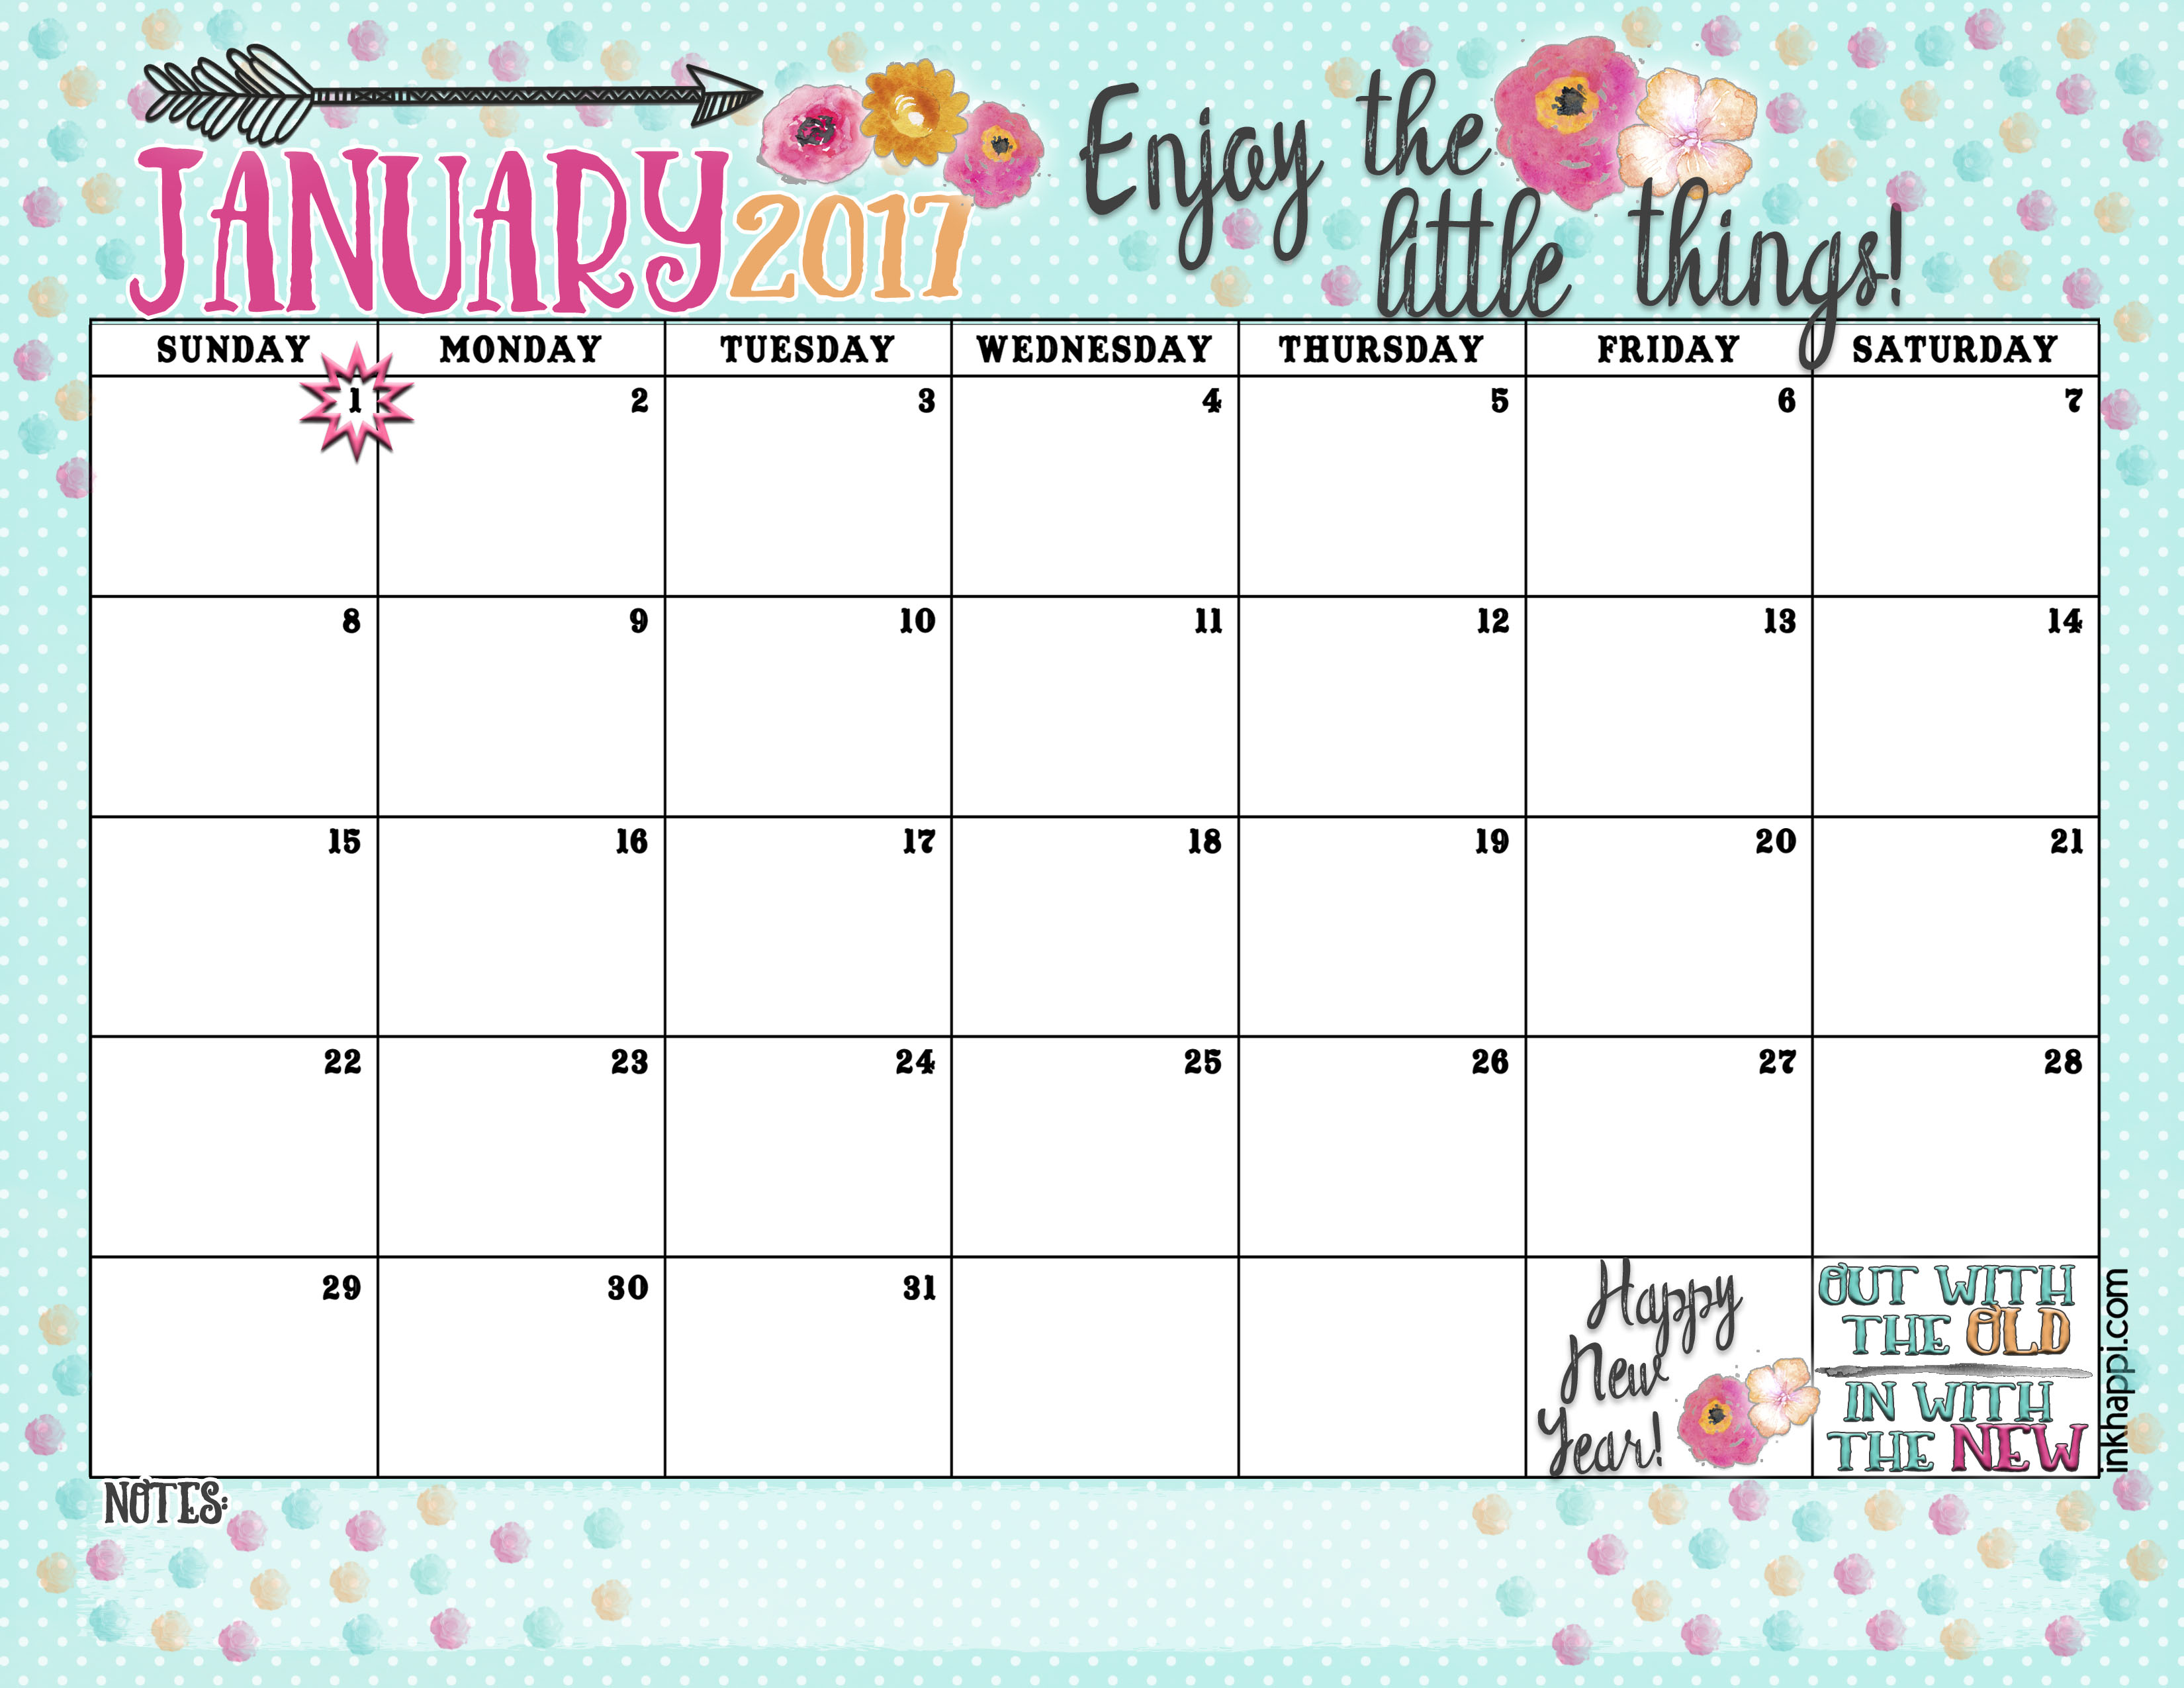 January 2017 Calendar and Print... Enjoy the Little Things ...